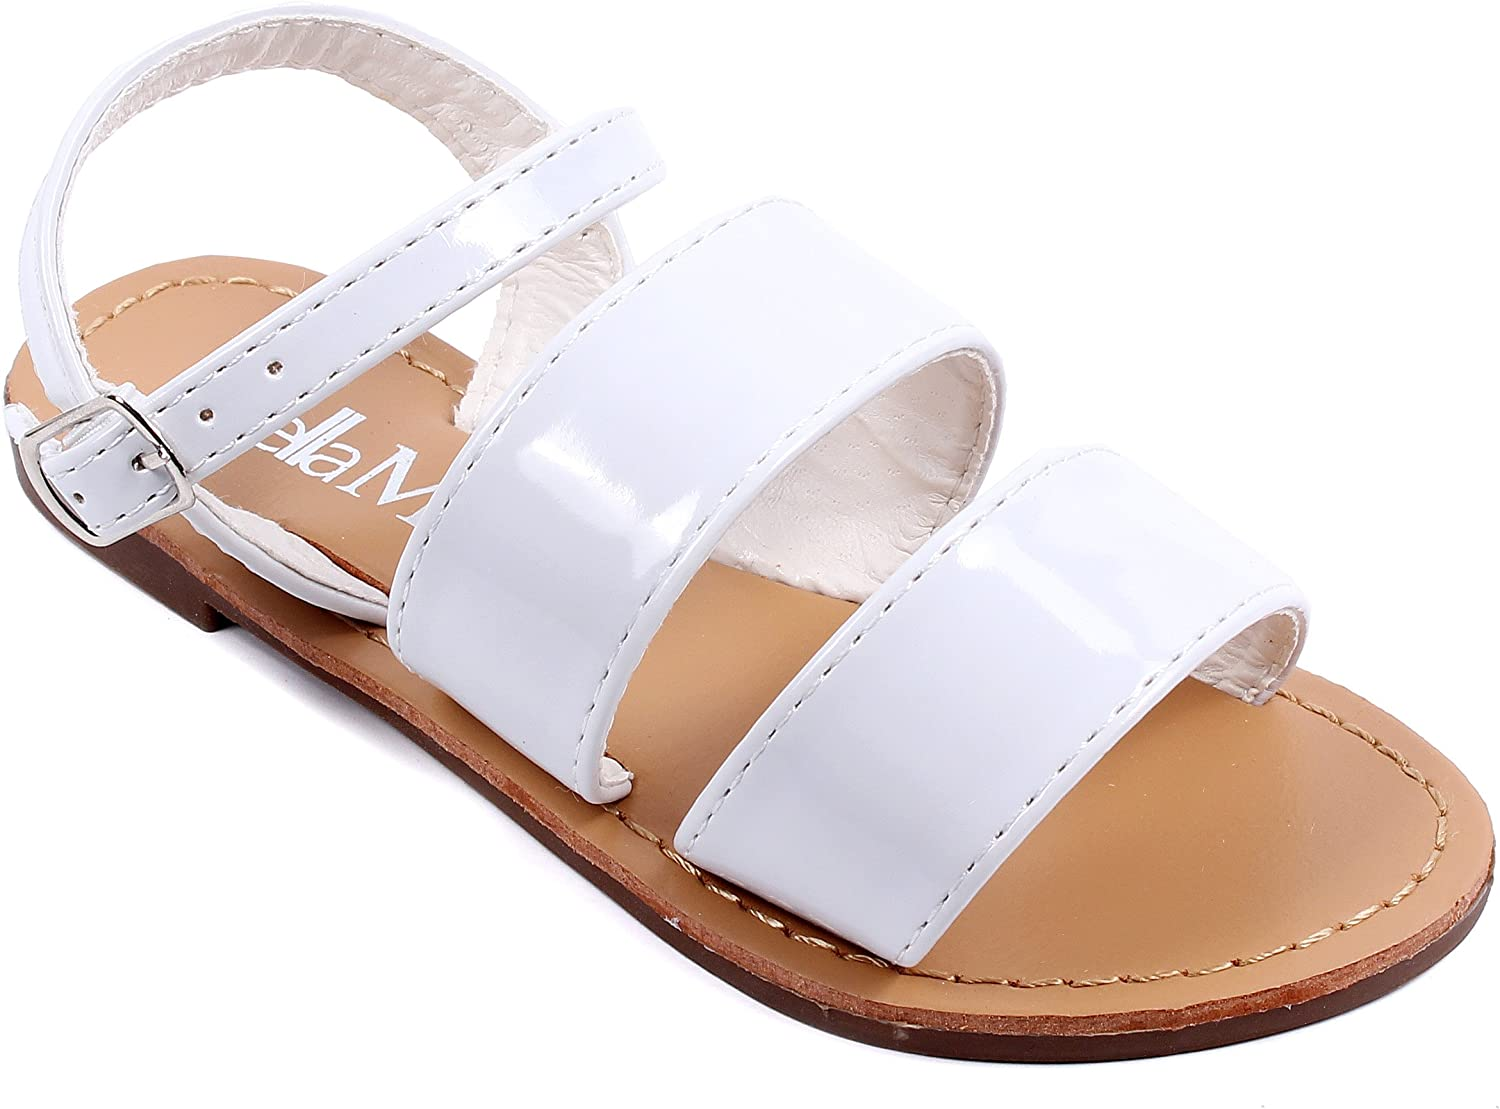 Other Fashion New Strappy Buckle Kids Girls Sandals Flats Youth Casual Shoes New Without Box